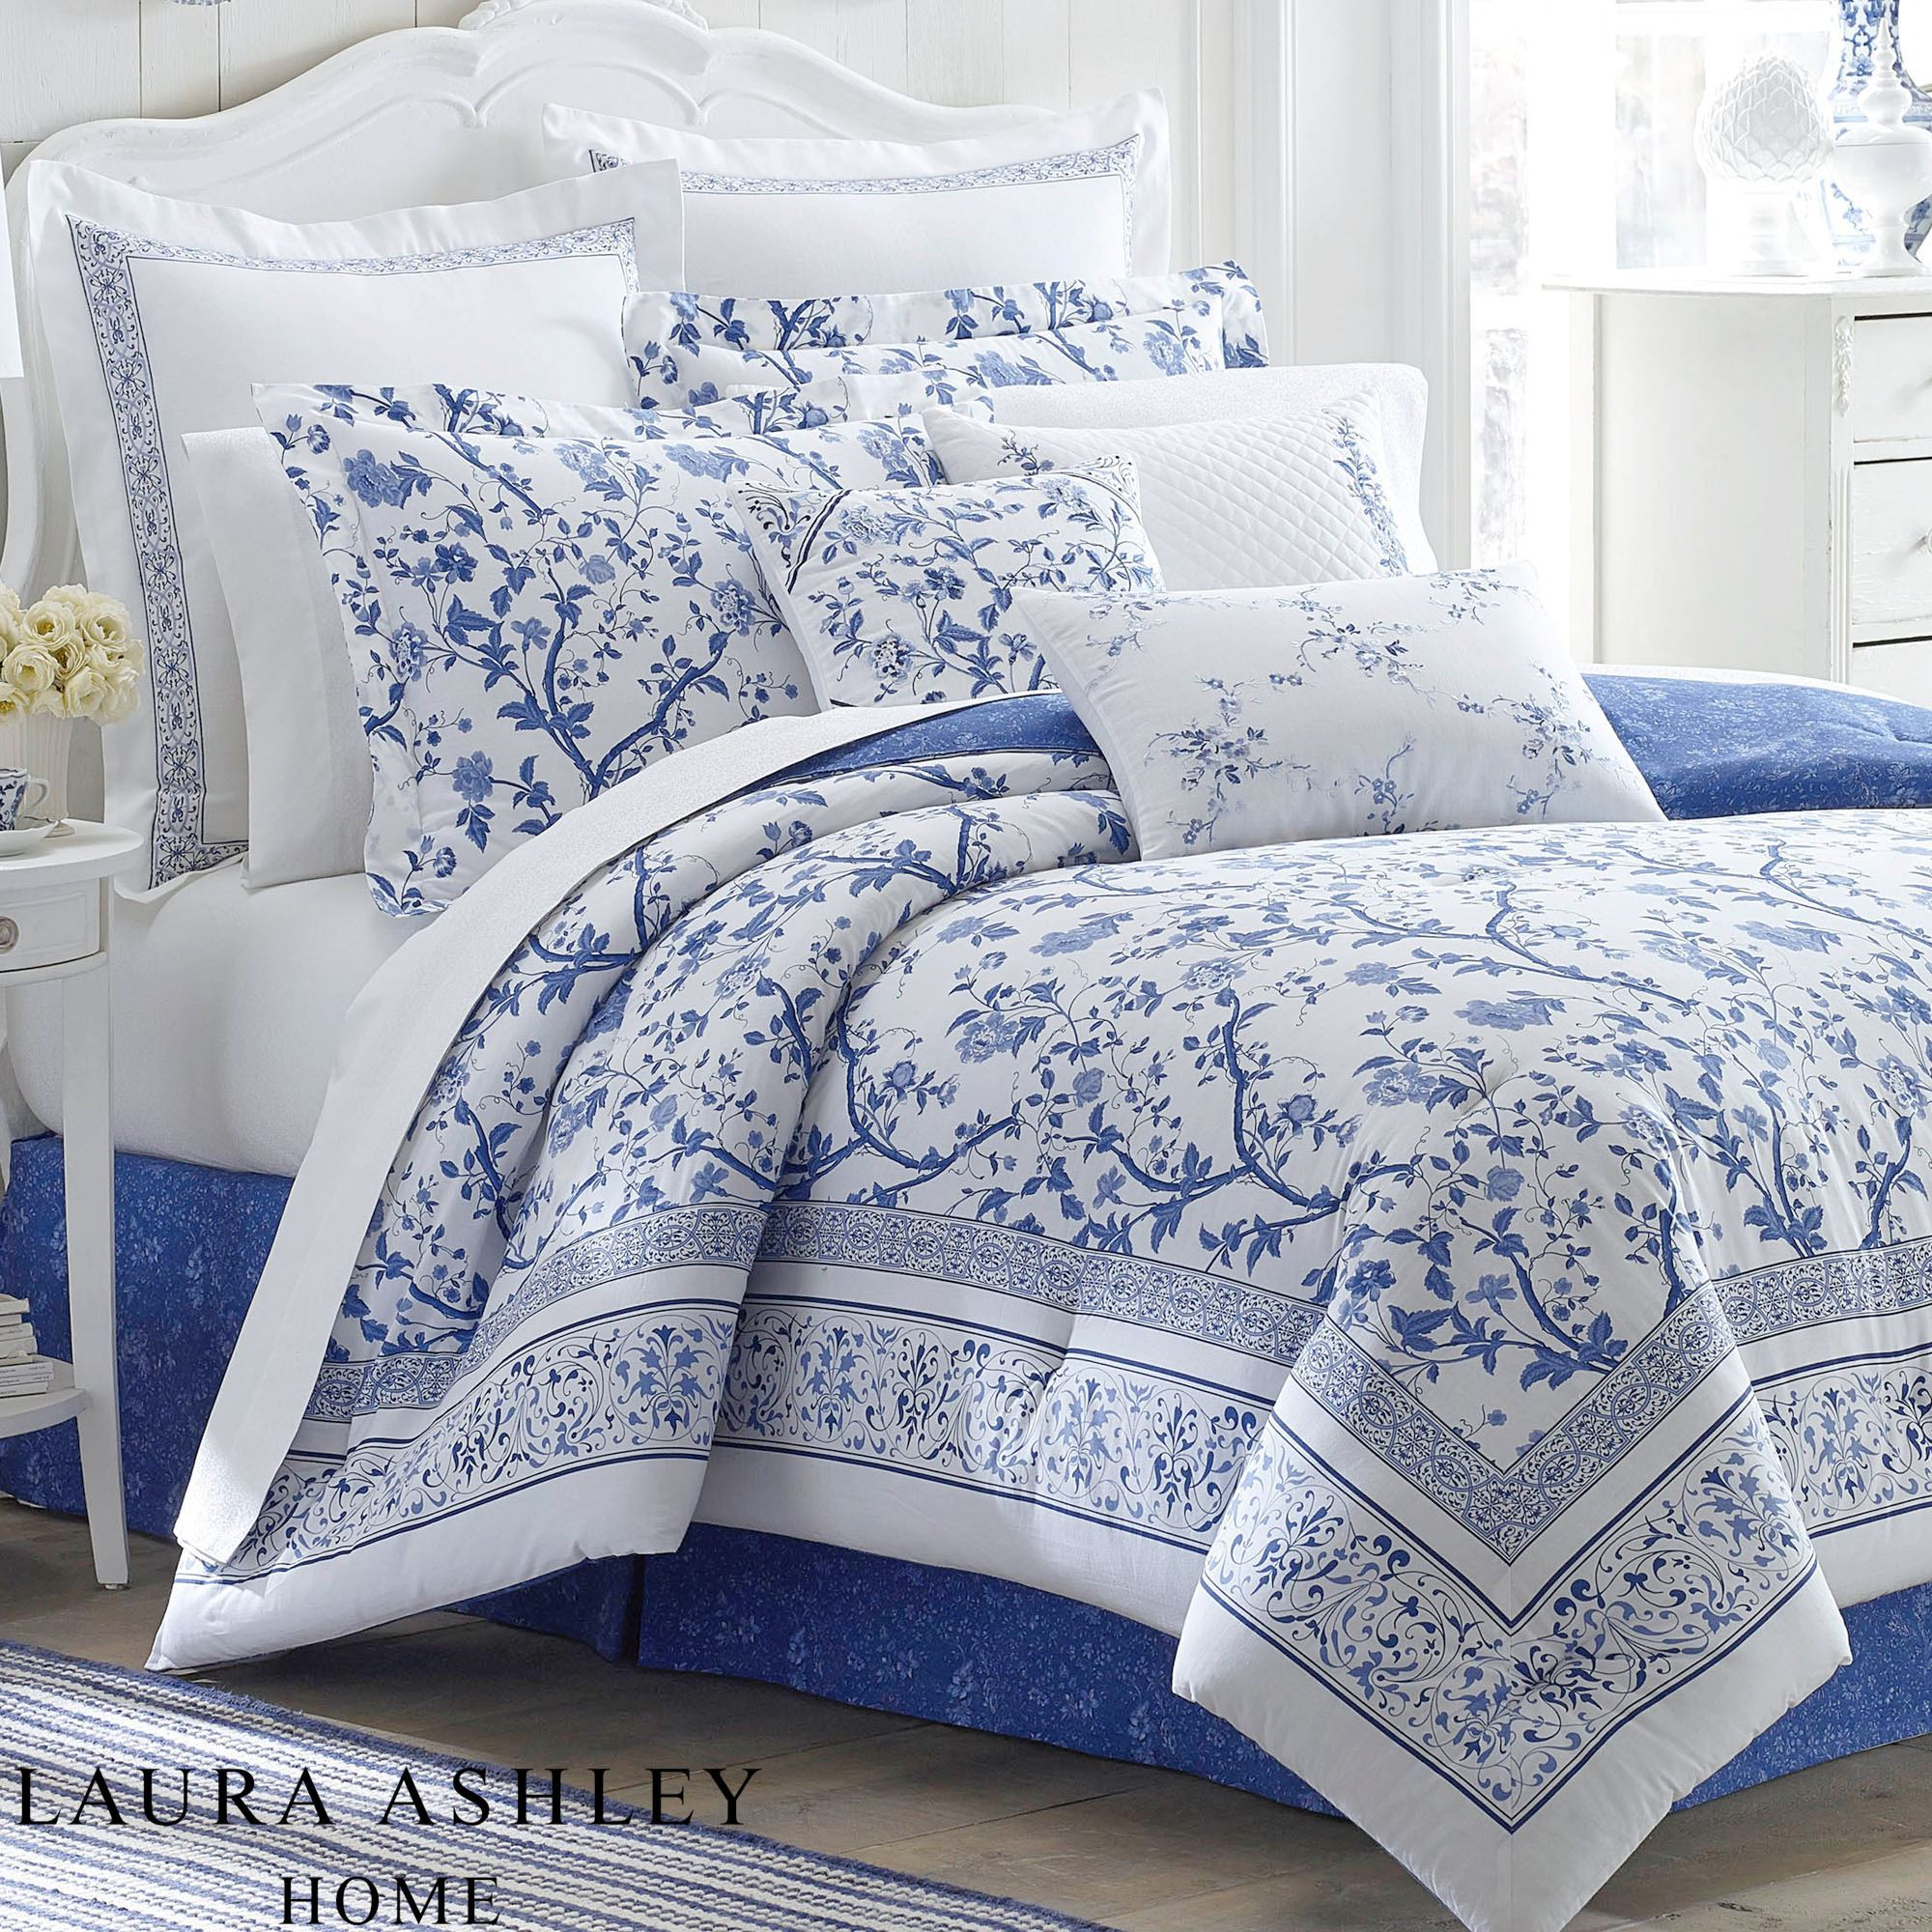 Charlotte Blue And White Floral Comforter Bedding By Laura Ashley